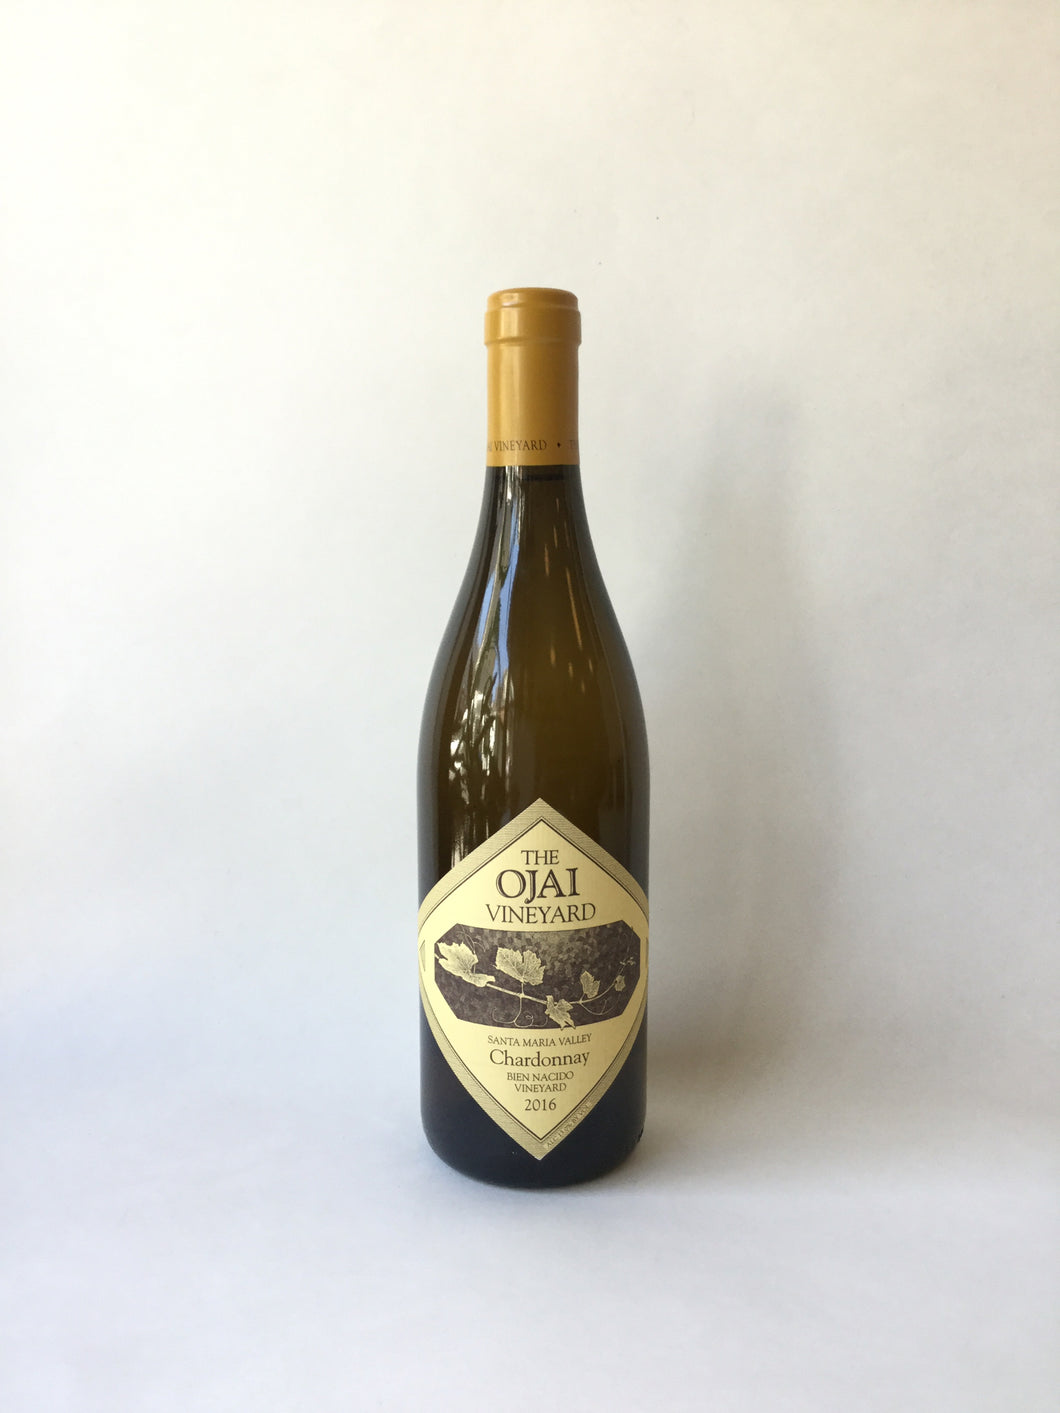 The Ojai Vineyard, Bien Nacido Chardonnay 2016, 750ml - Frankly Wines